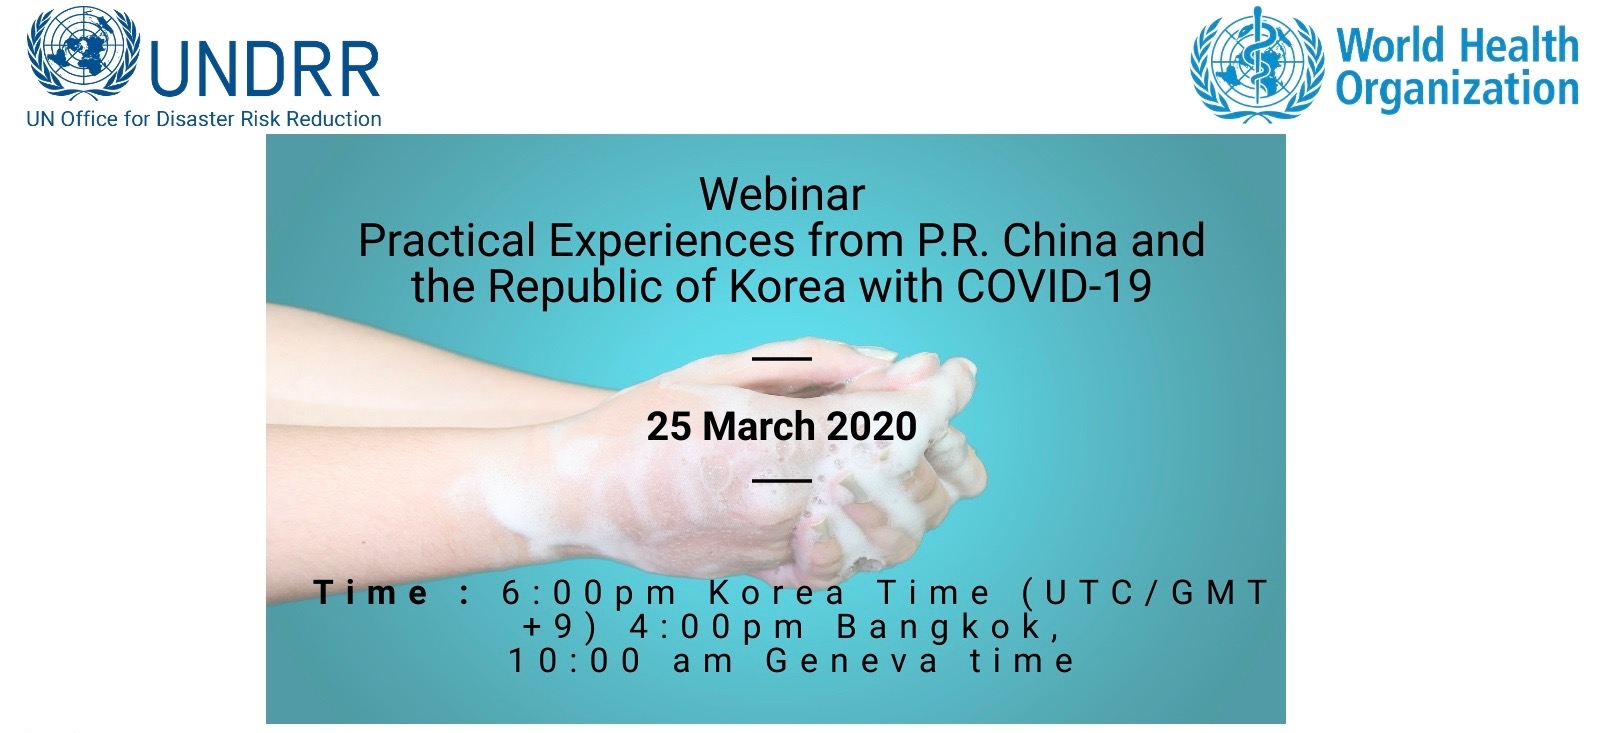 Banner for UNDRR ONEA & GETI and WHO Webinar - Practical Experiences from P.R. China and the Republic of Korea with COVID-19